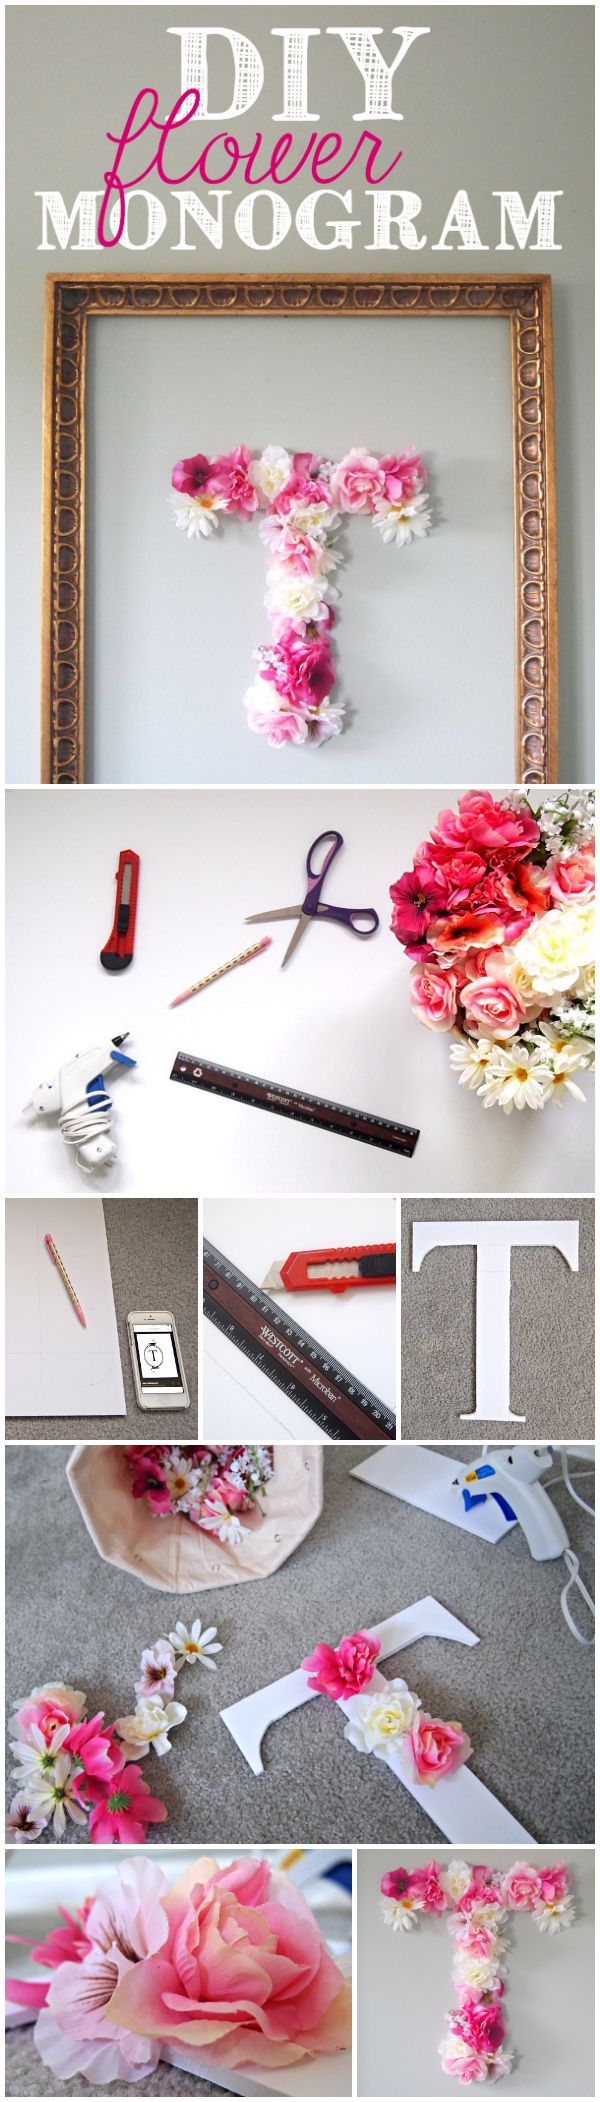 DIY Faux Flower Monogram.